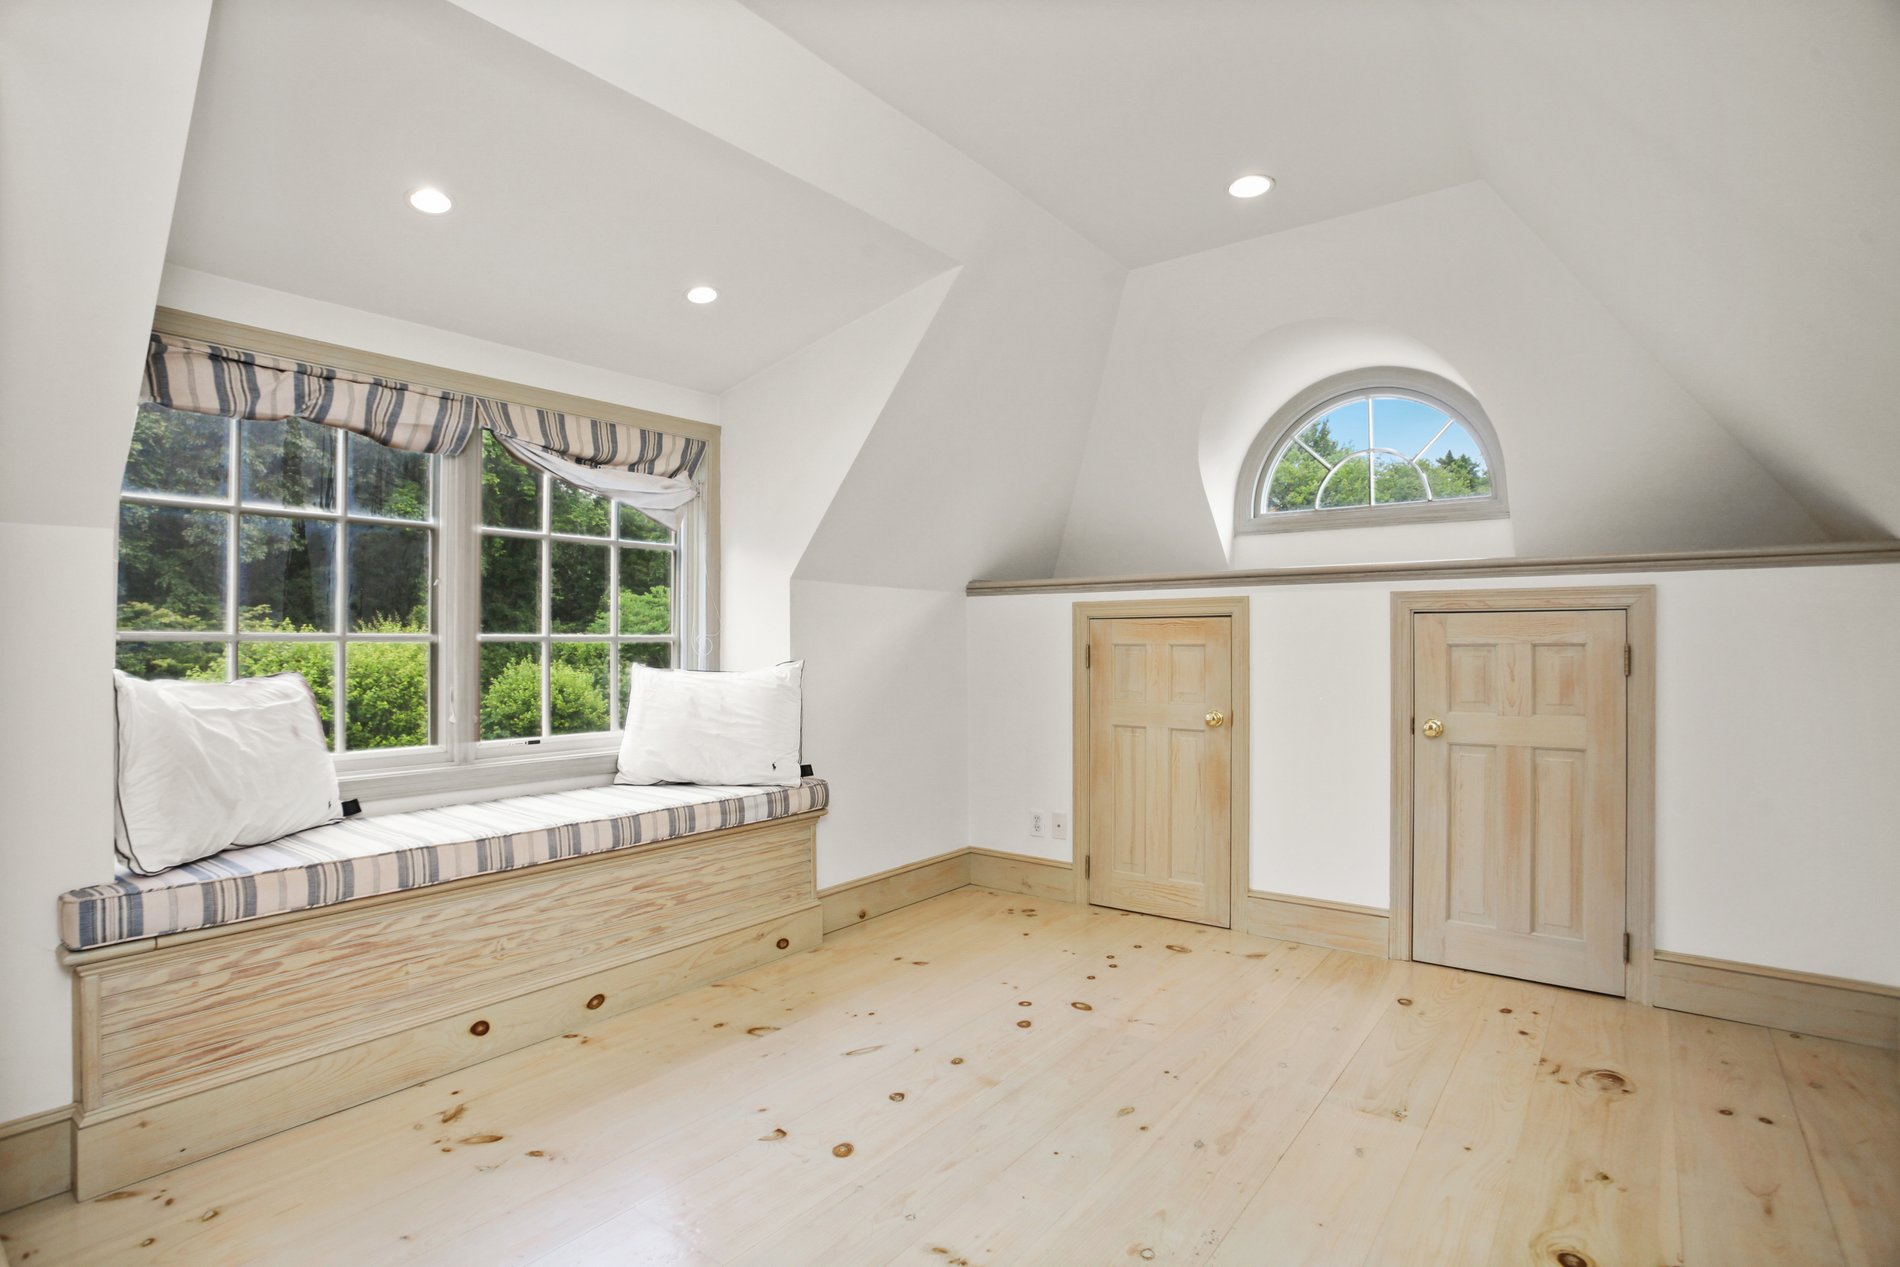 Rustic country style finished attic with wide plank knotty pine floors and a high window seat.